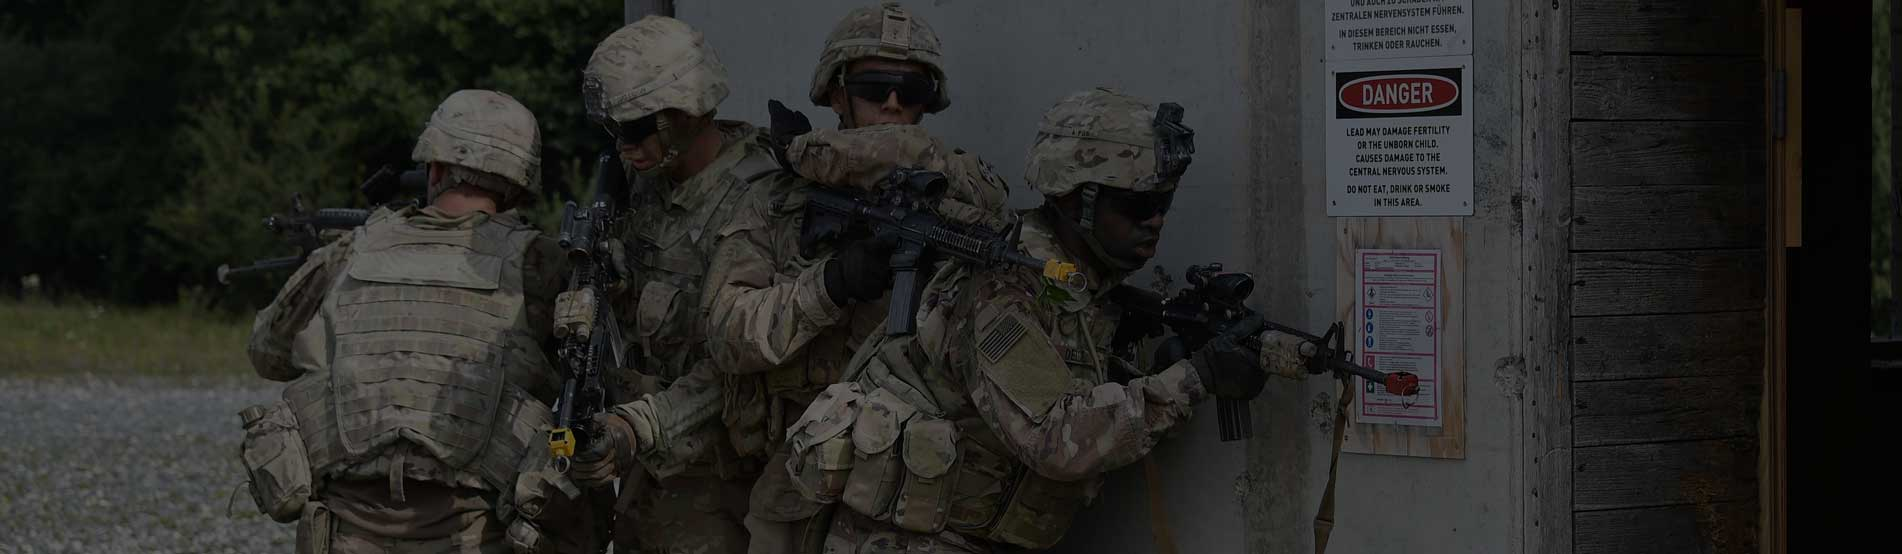 21st Century Breaching System front background list2 1